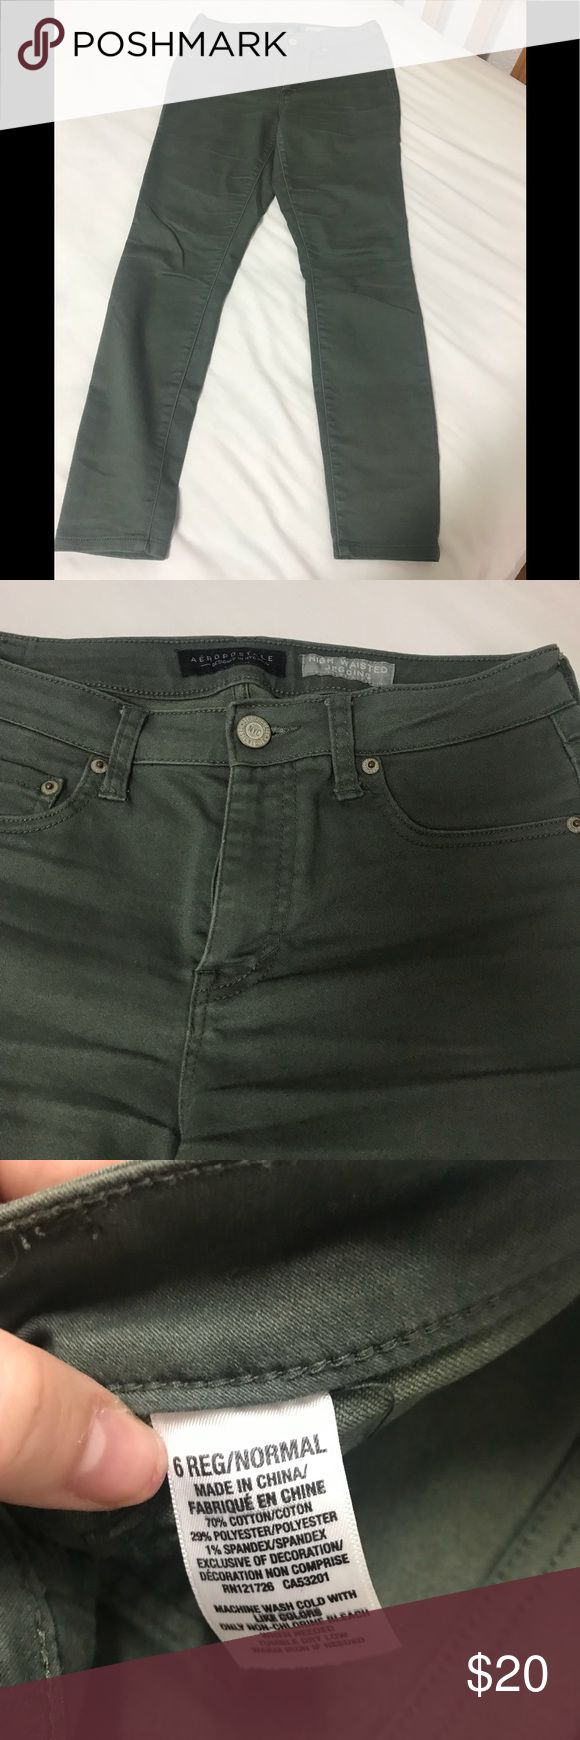 Olive green high waisted skinny jeans Olive green high waisted skinny jeans Aeropostale Jeans Skinny